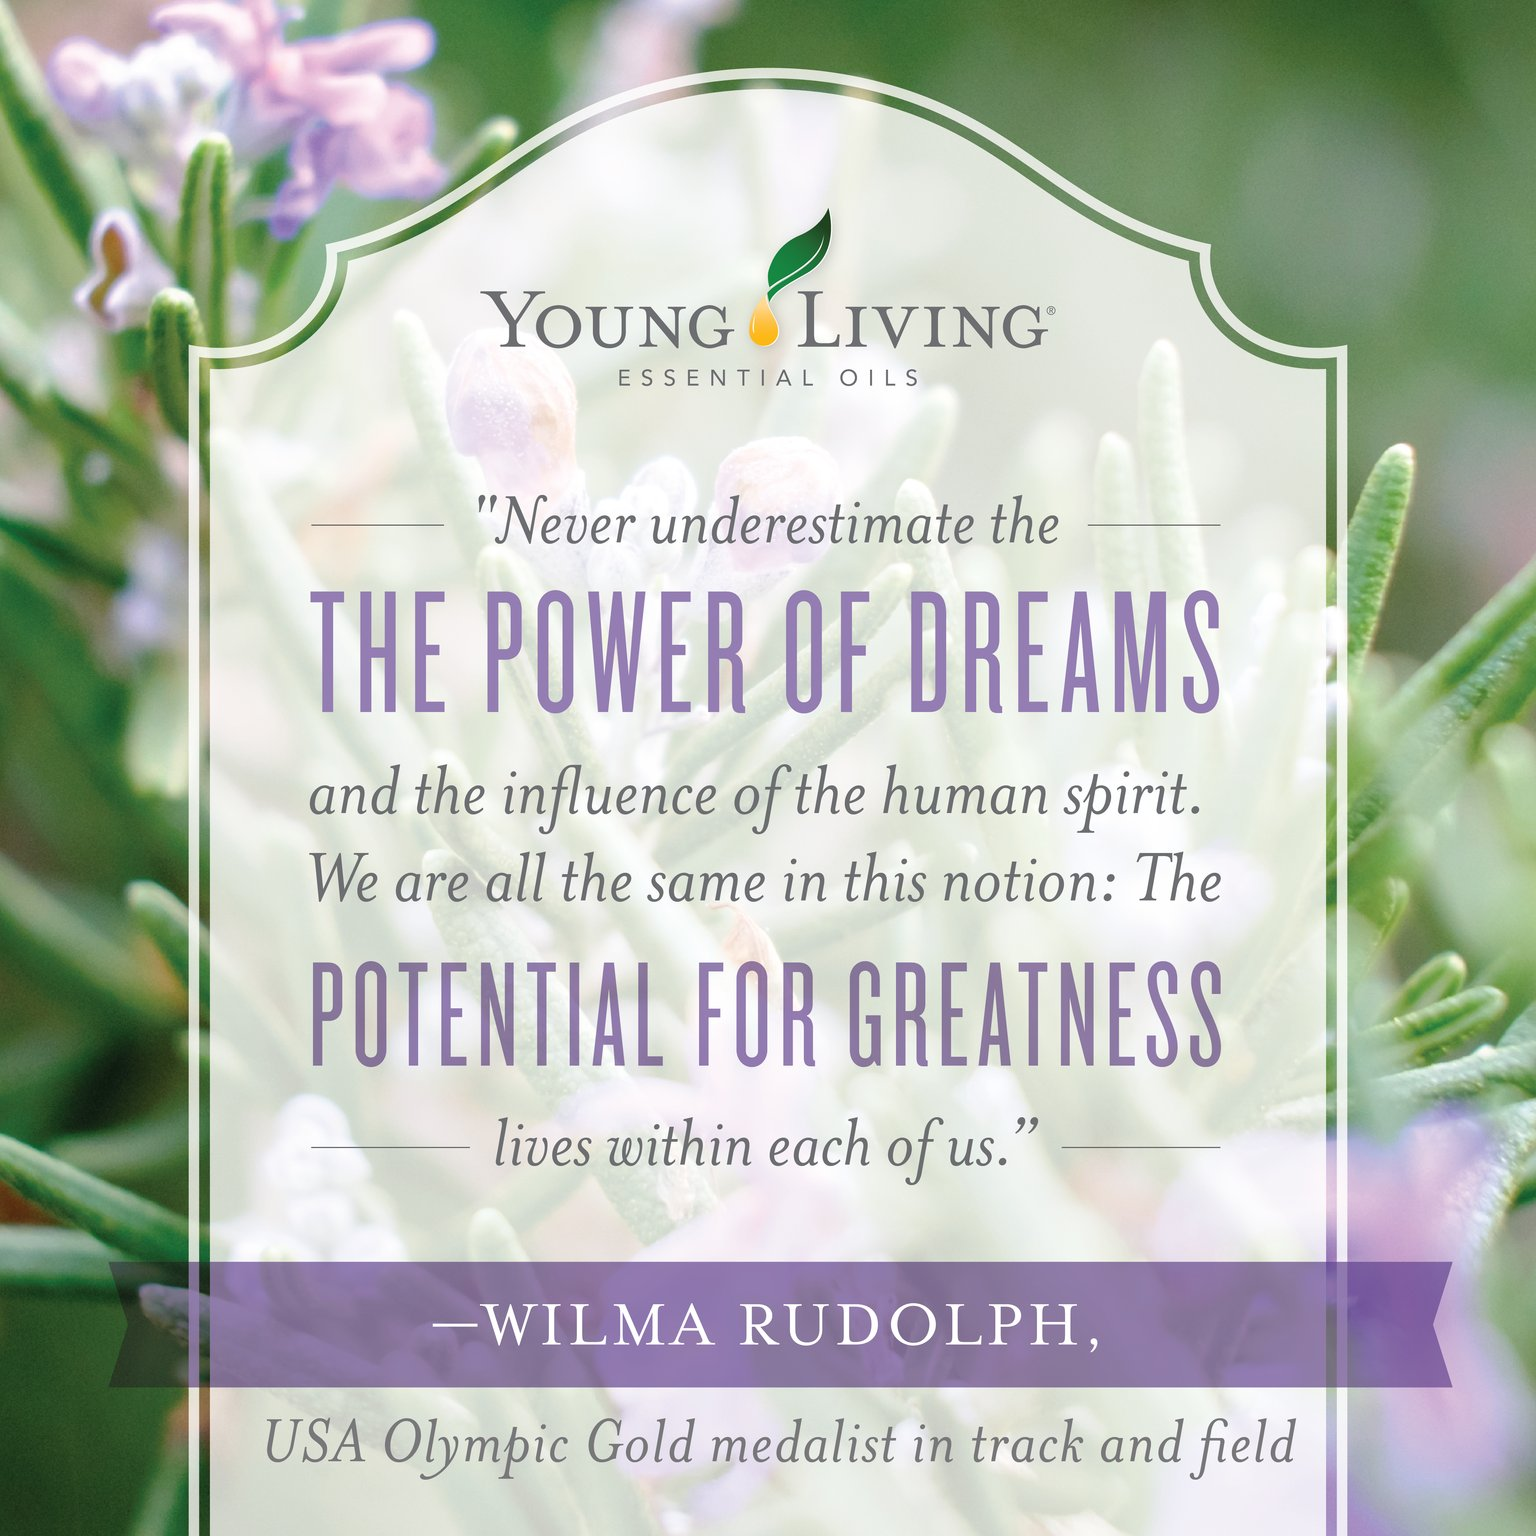 Dreaming big is the only way to achieve greatness! #motivationmonday https://t.co/qK1HZ7VPVO